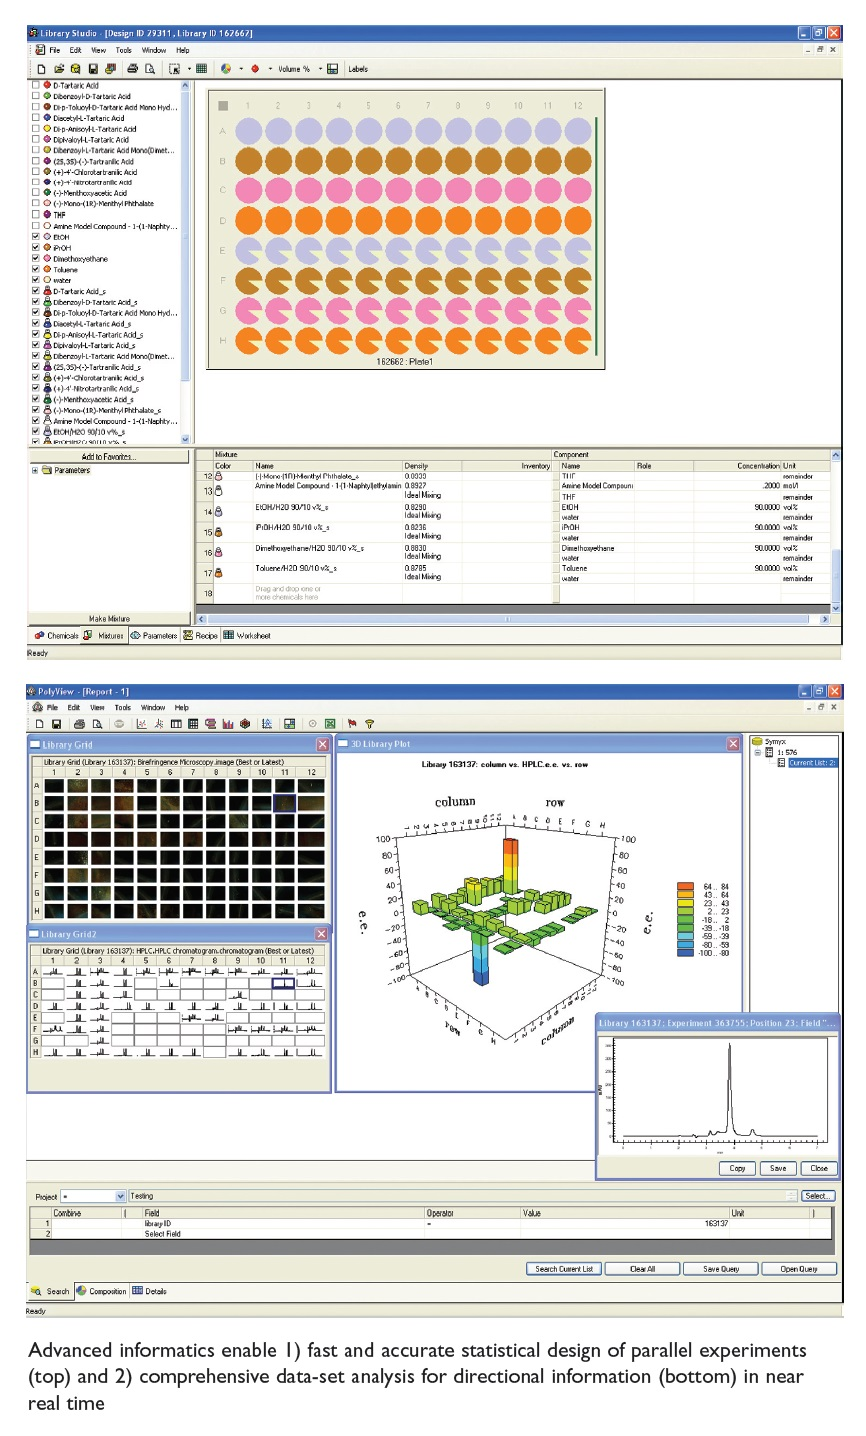 Image 2 Advanced Informatics enable fast and accurate statistical design and comprehensive data-set analysis